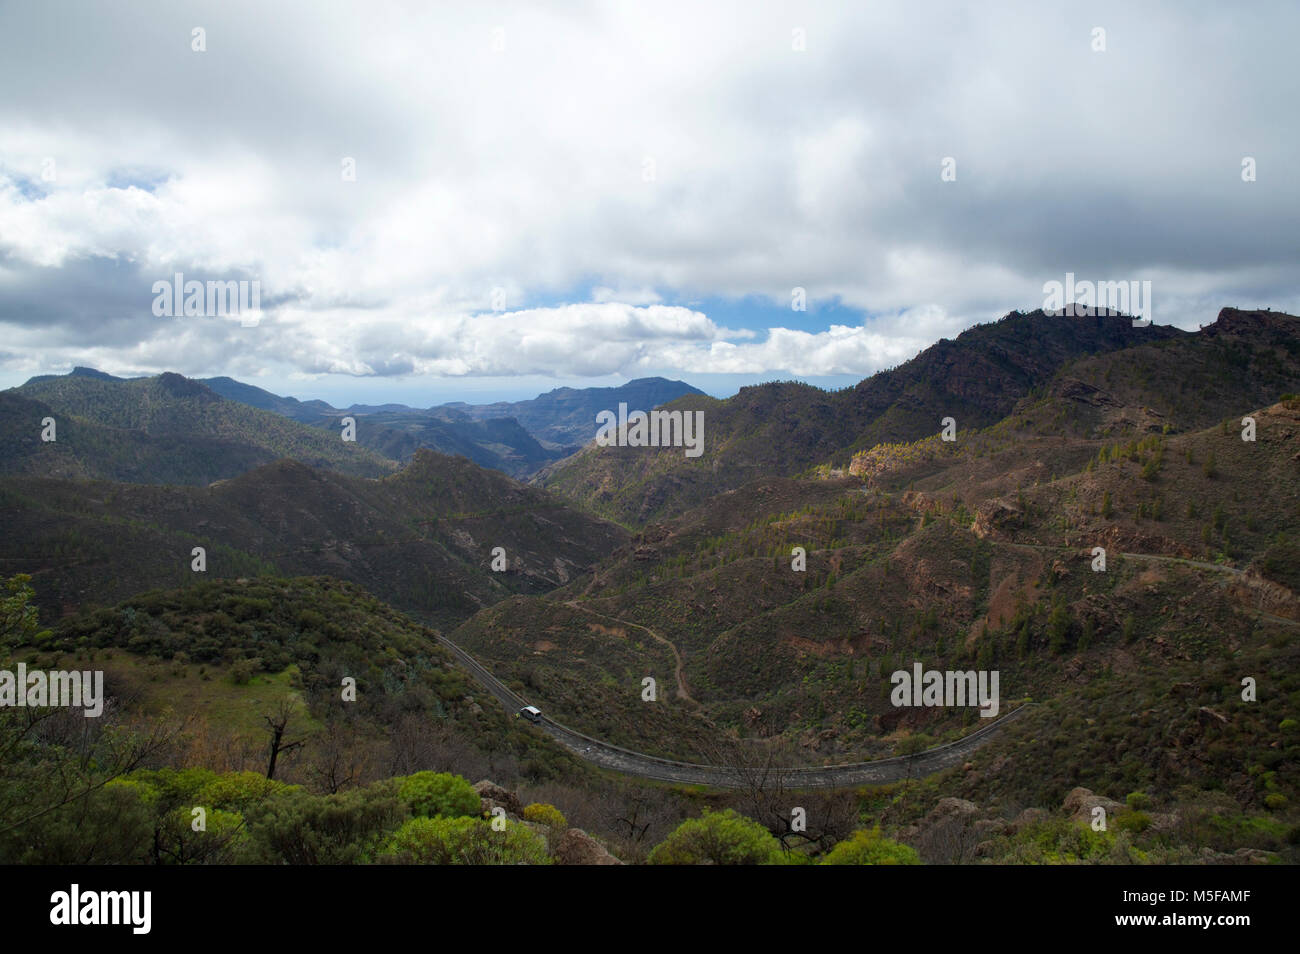 Gran Canaria, february 2018, Las Cumbres - the highest ares of the island, view from under clouds towards sunny - Stock Image